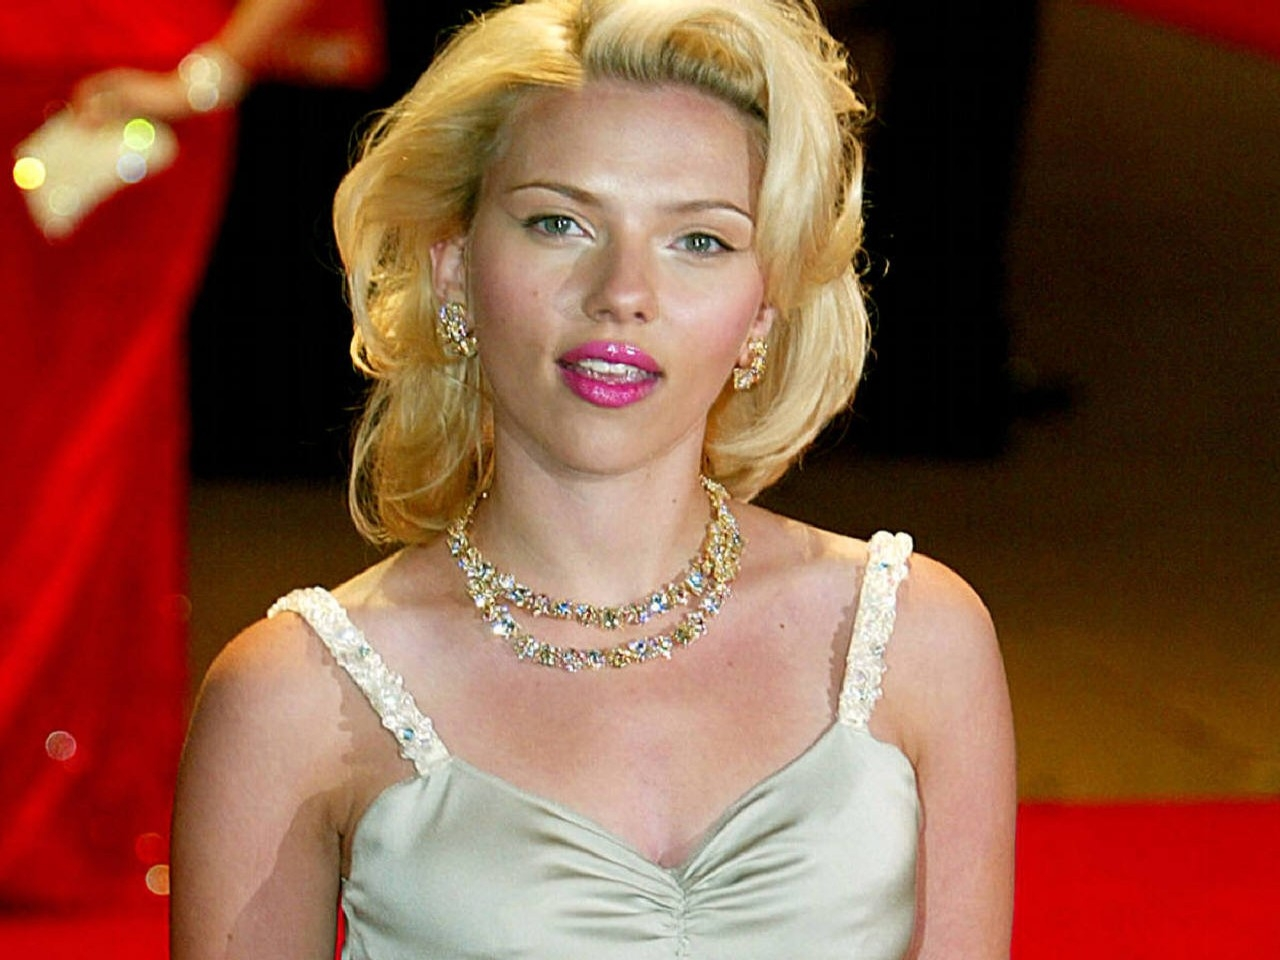 Wallpaper di Scarlett Johansson sul red carpet